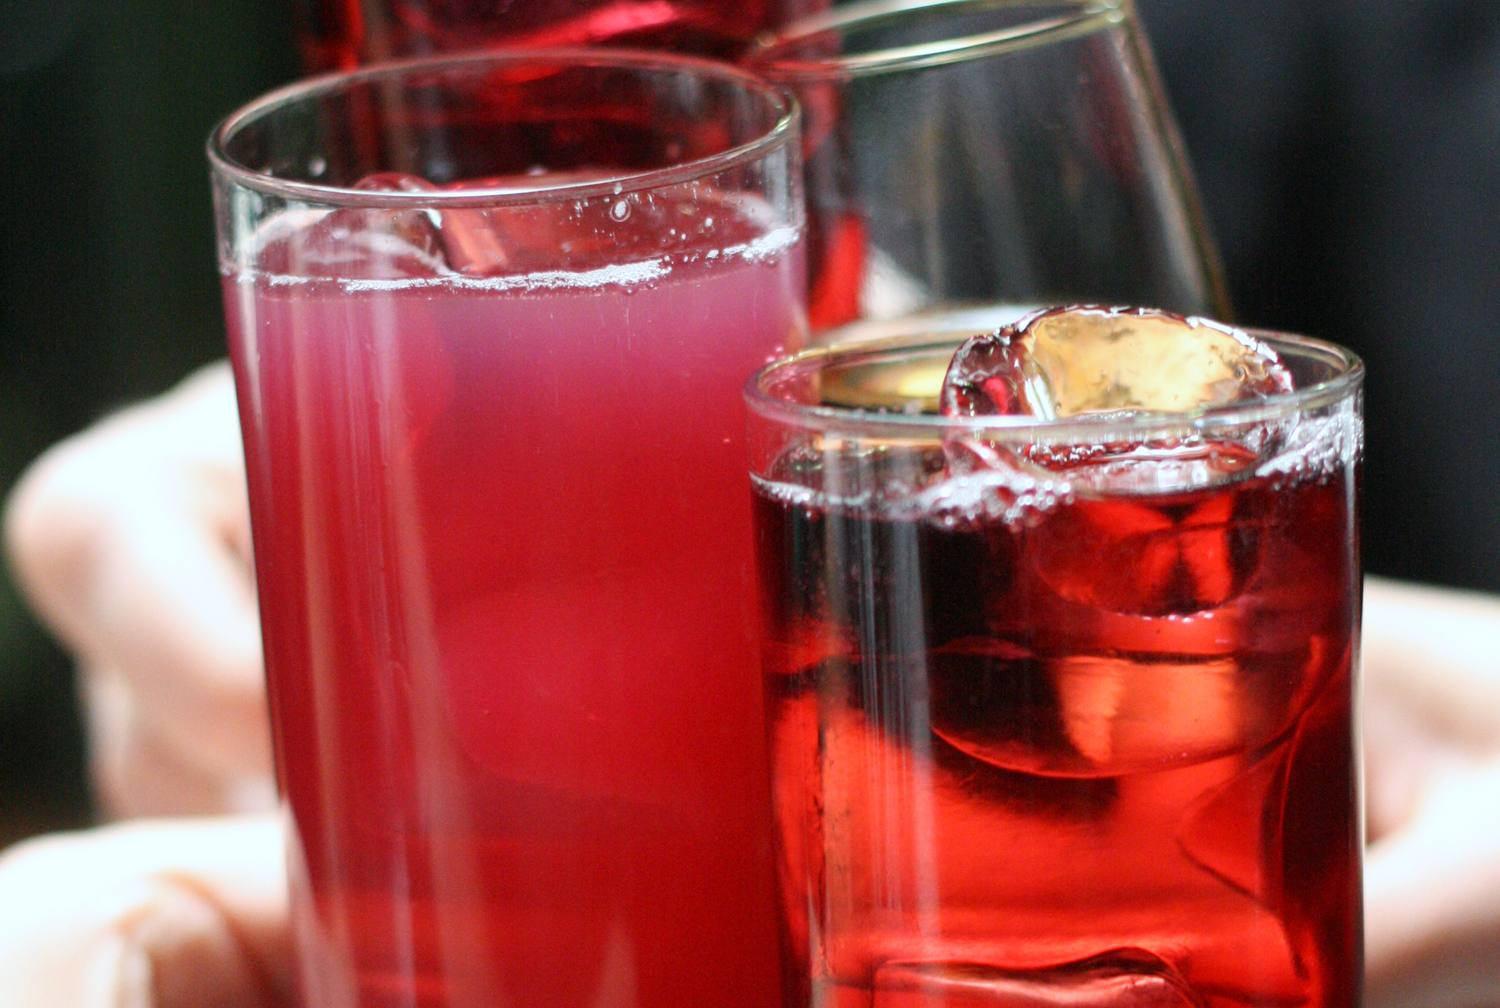 tinto-de-verano-cocktail.JPG